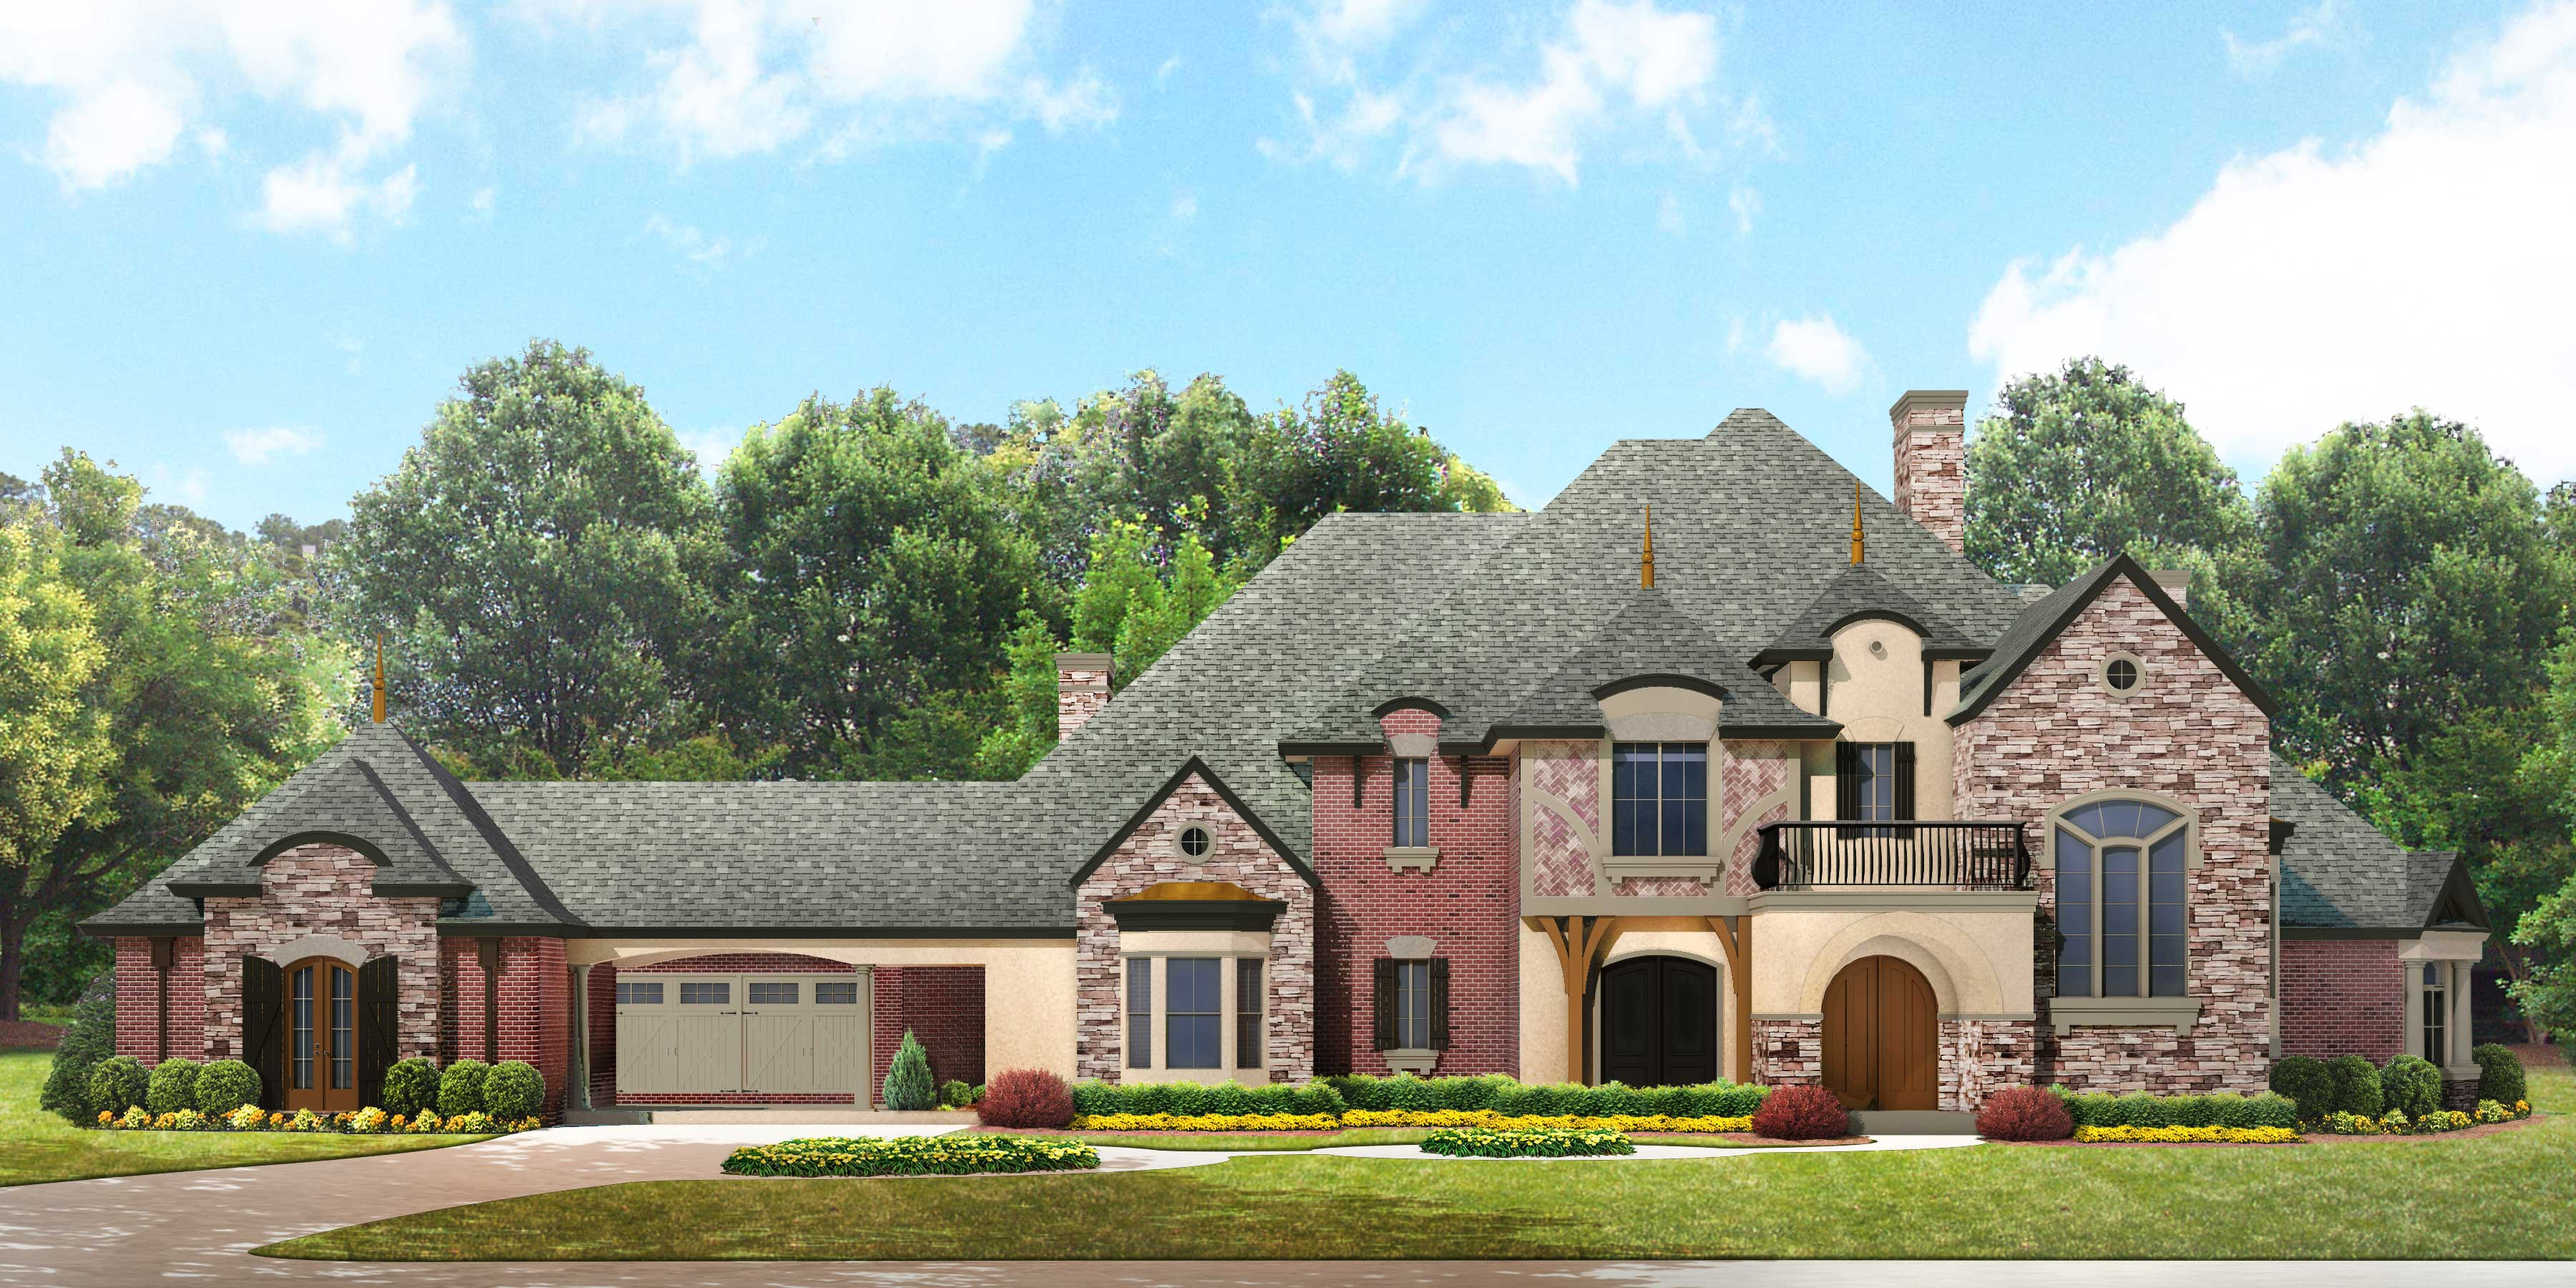 European manor house plan 134 1350 4 bedrm 5303 sq ft for Luxury house plans online